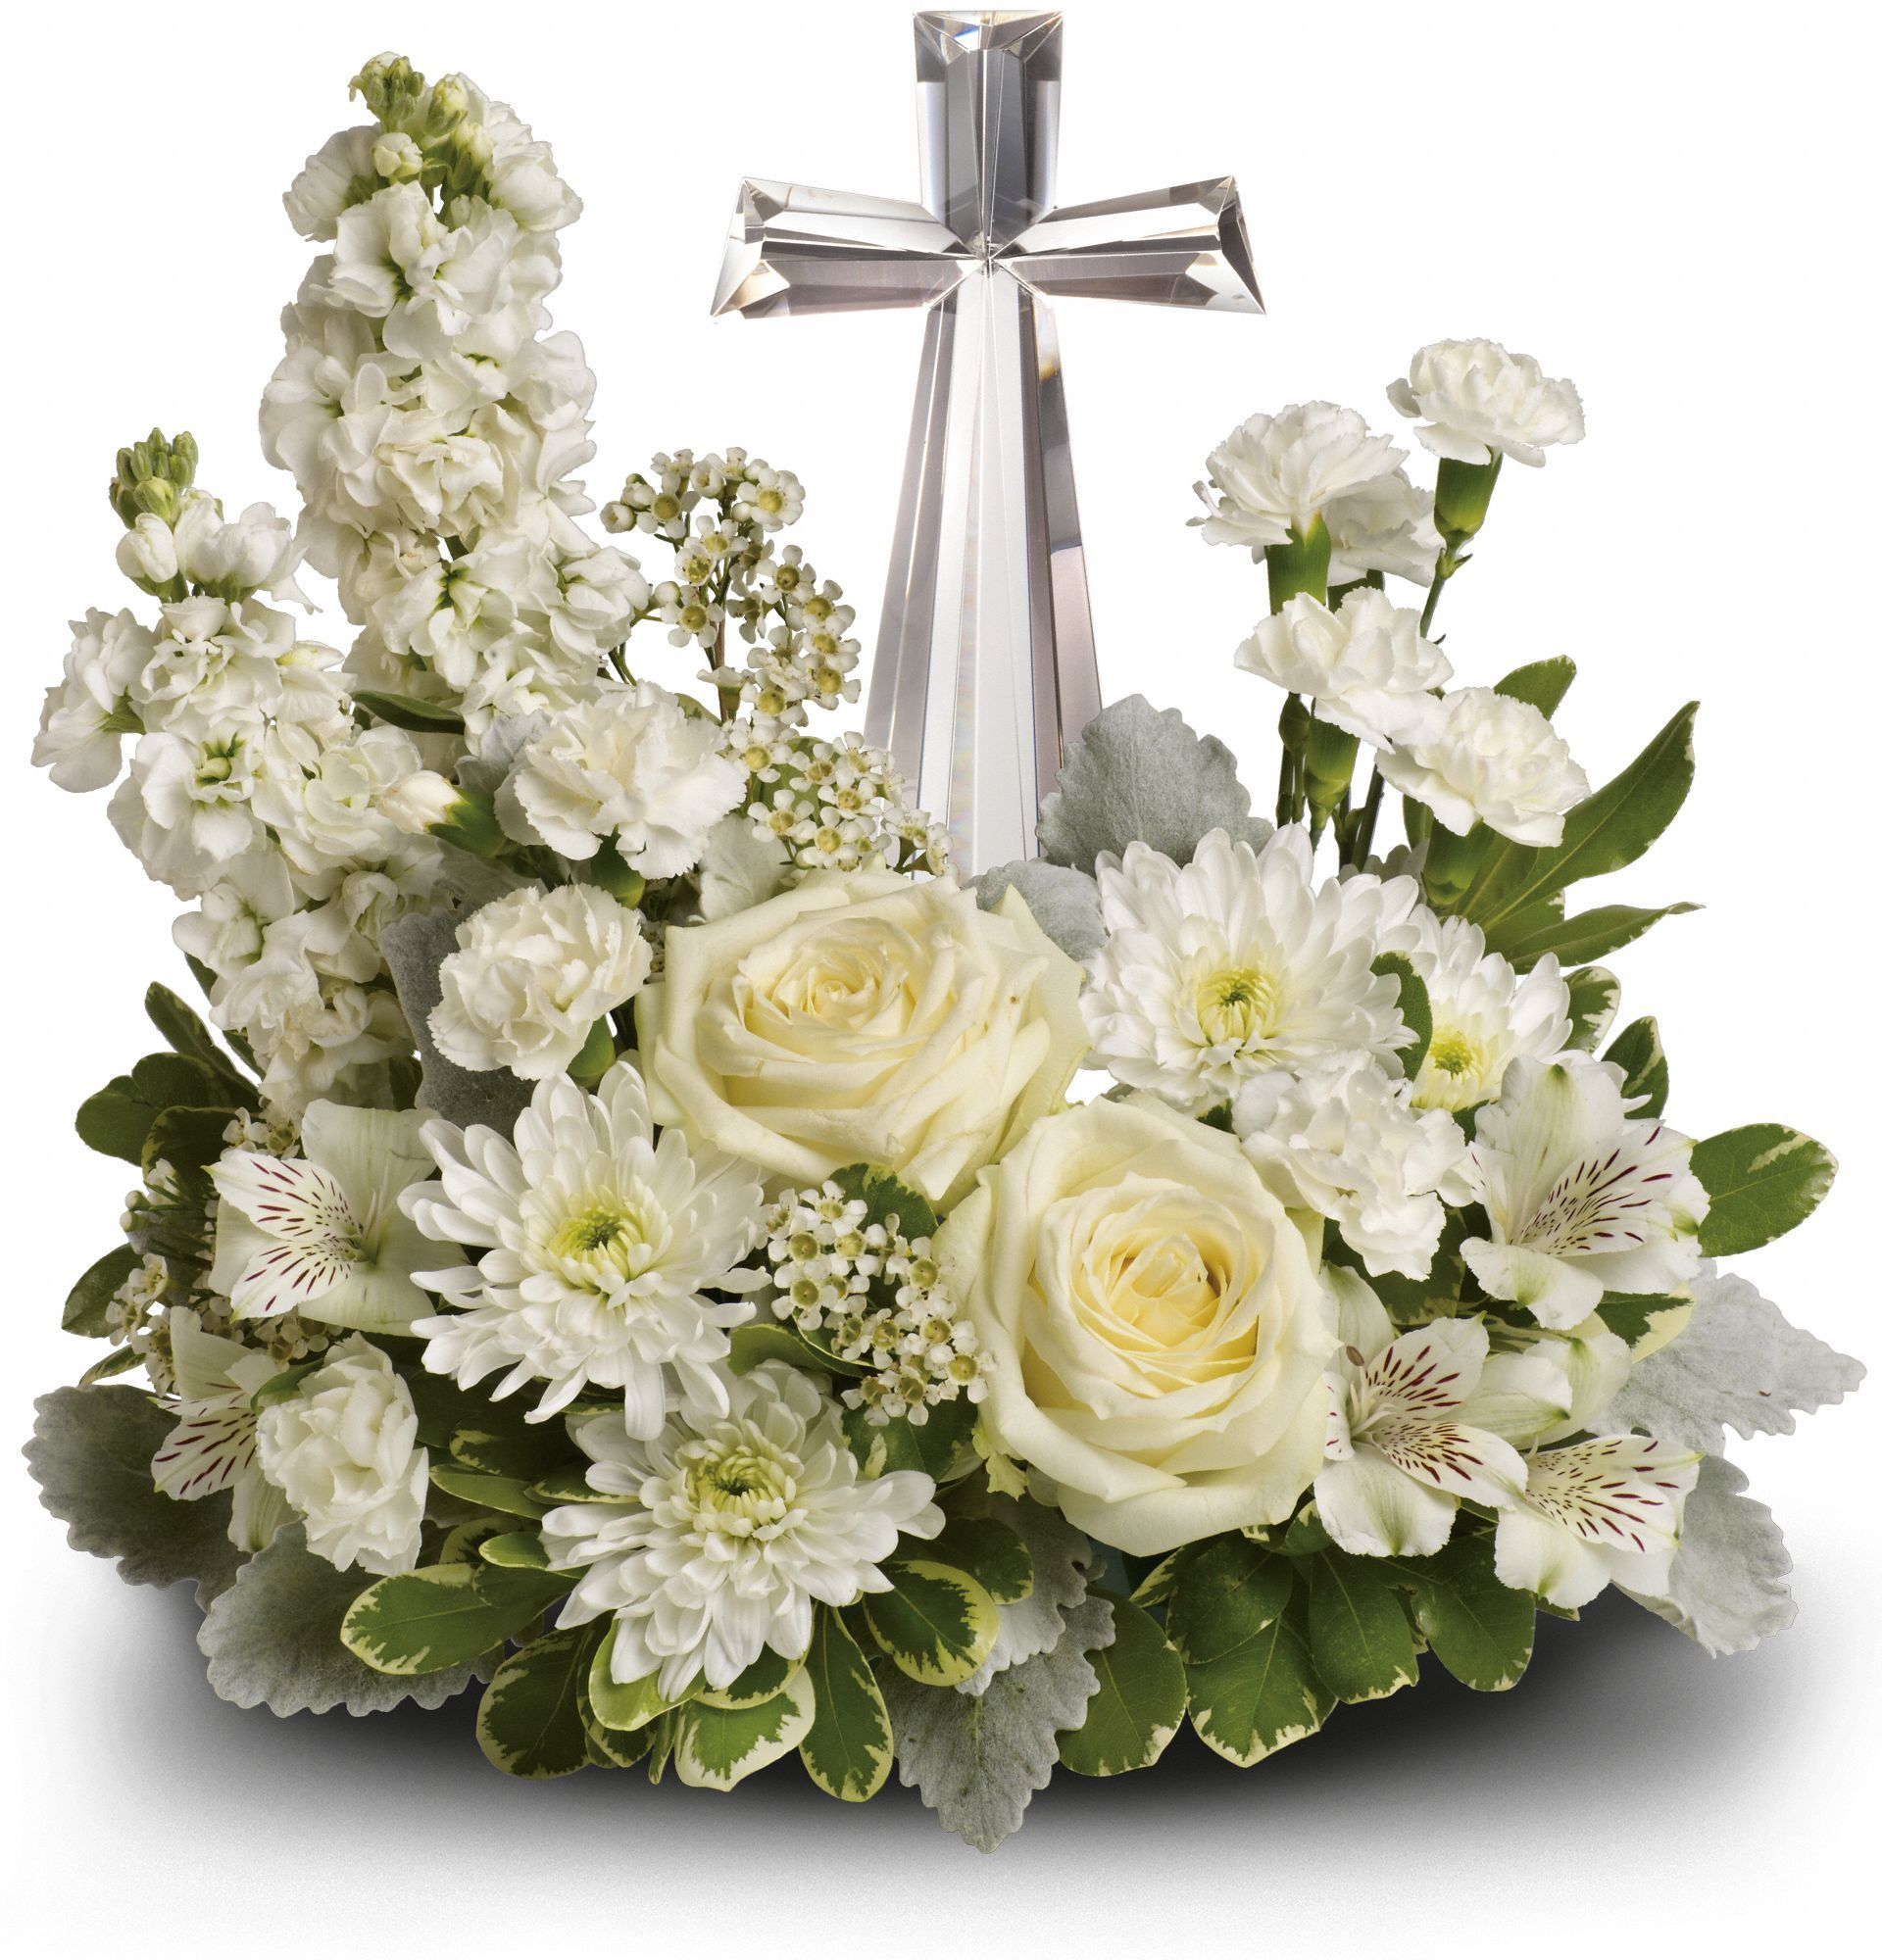 Lush white funeral flowers surround a beautiful crystal cross in lush white funeral flowers surround a beautiful crystal cross in this stunning all white funeral bouquet dhlflorist Images